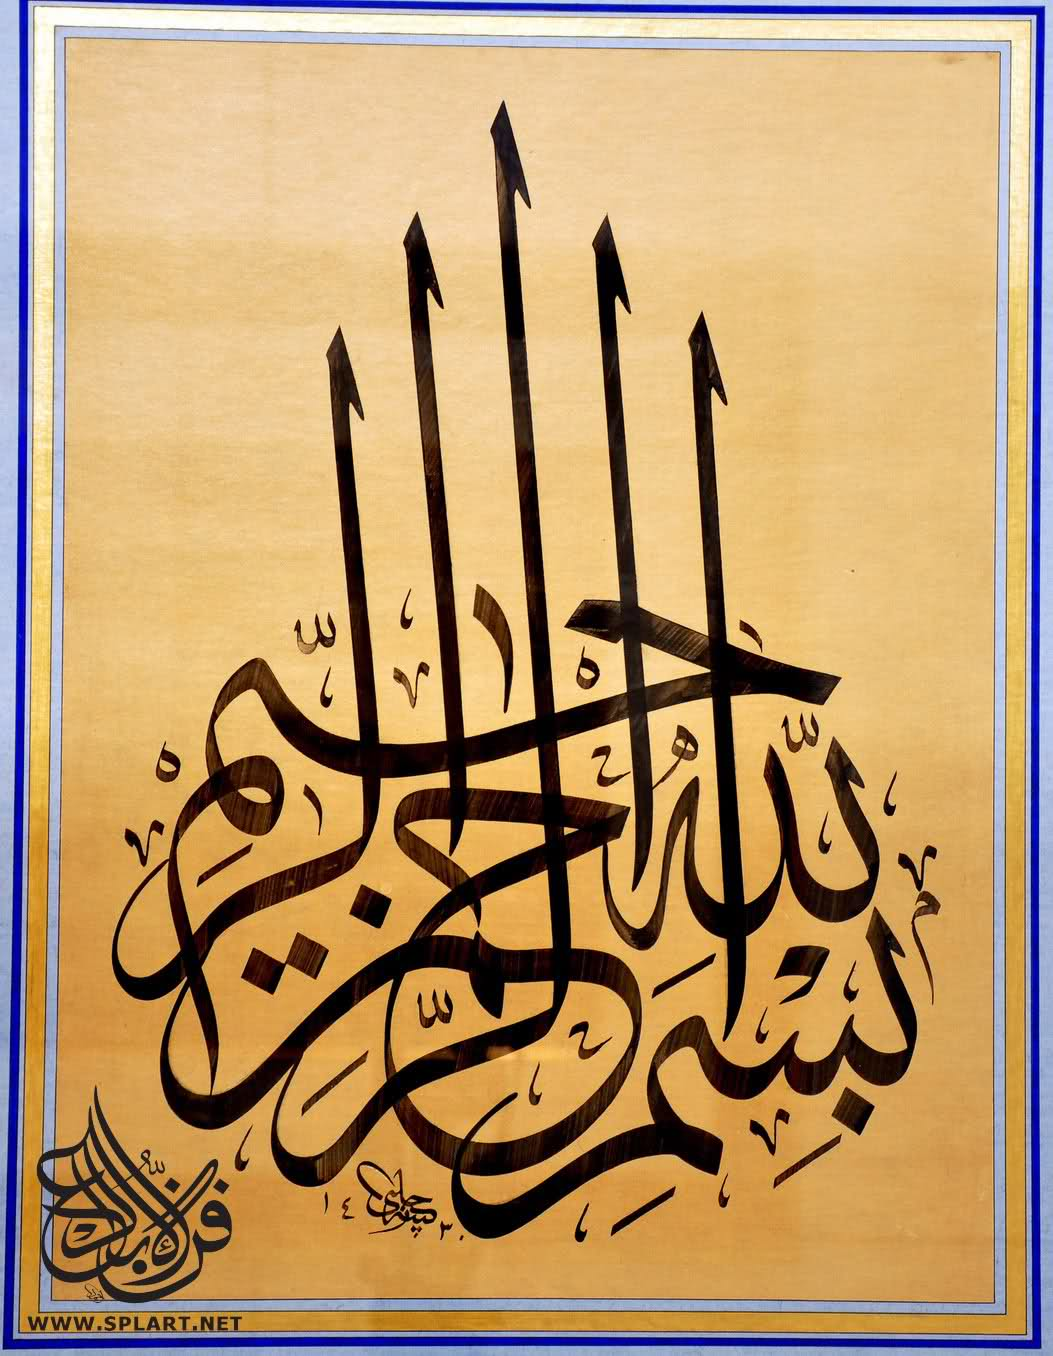 Islami talimaat amazing islamic calligraphy art Images of calligraphy